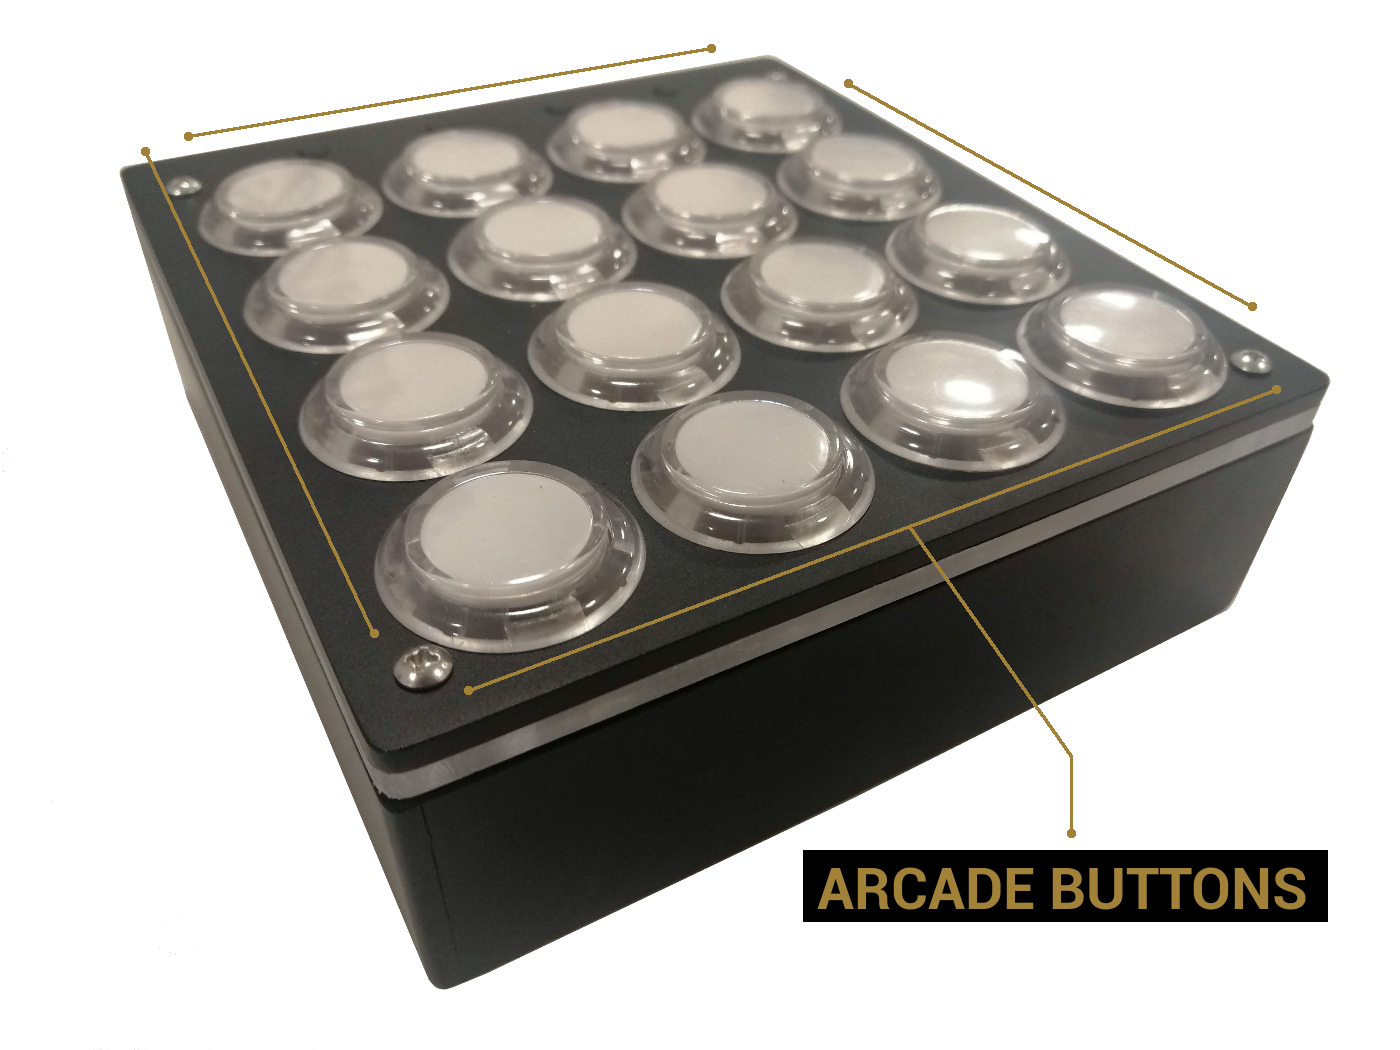 dyi arcade buttons usb midi controller detailed view